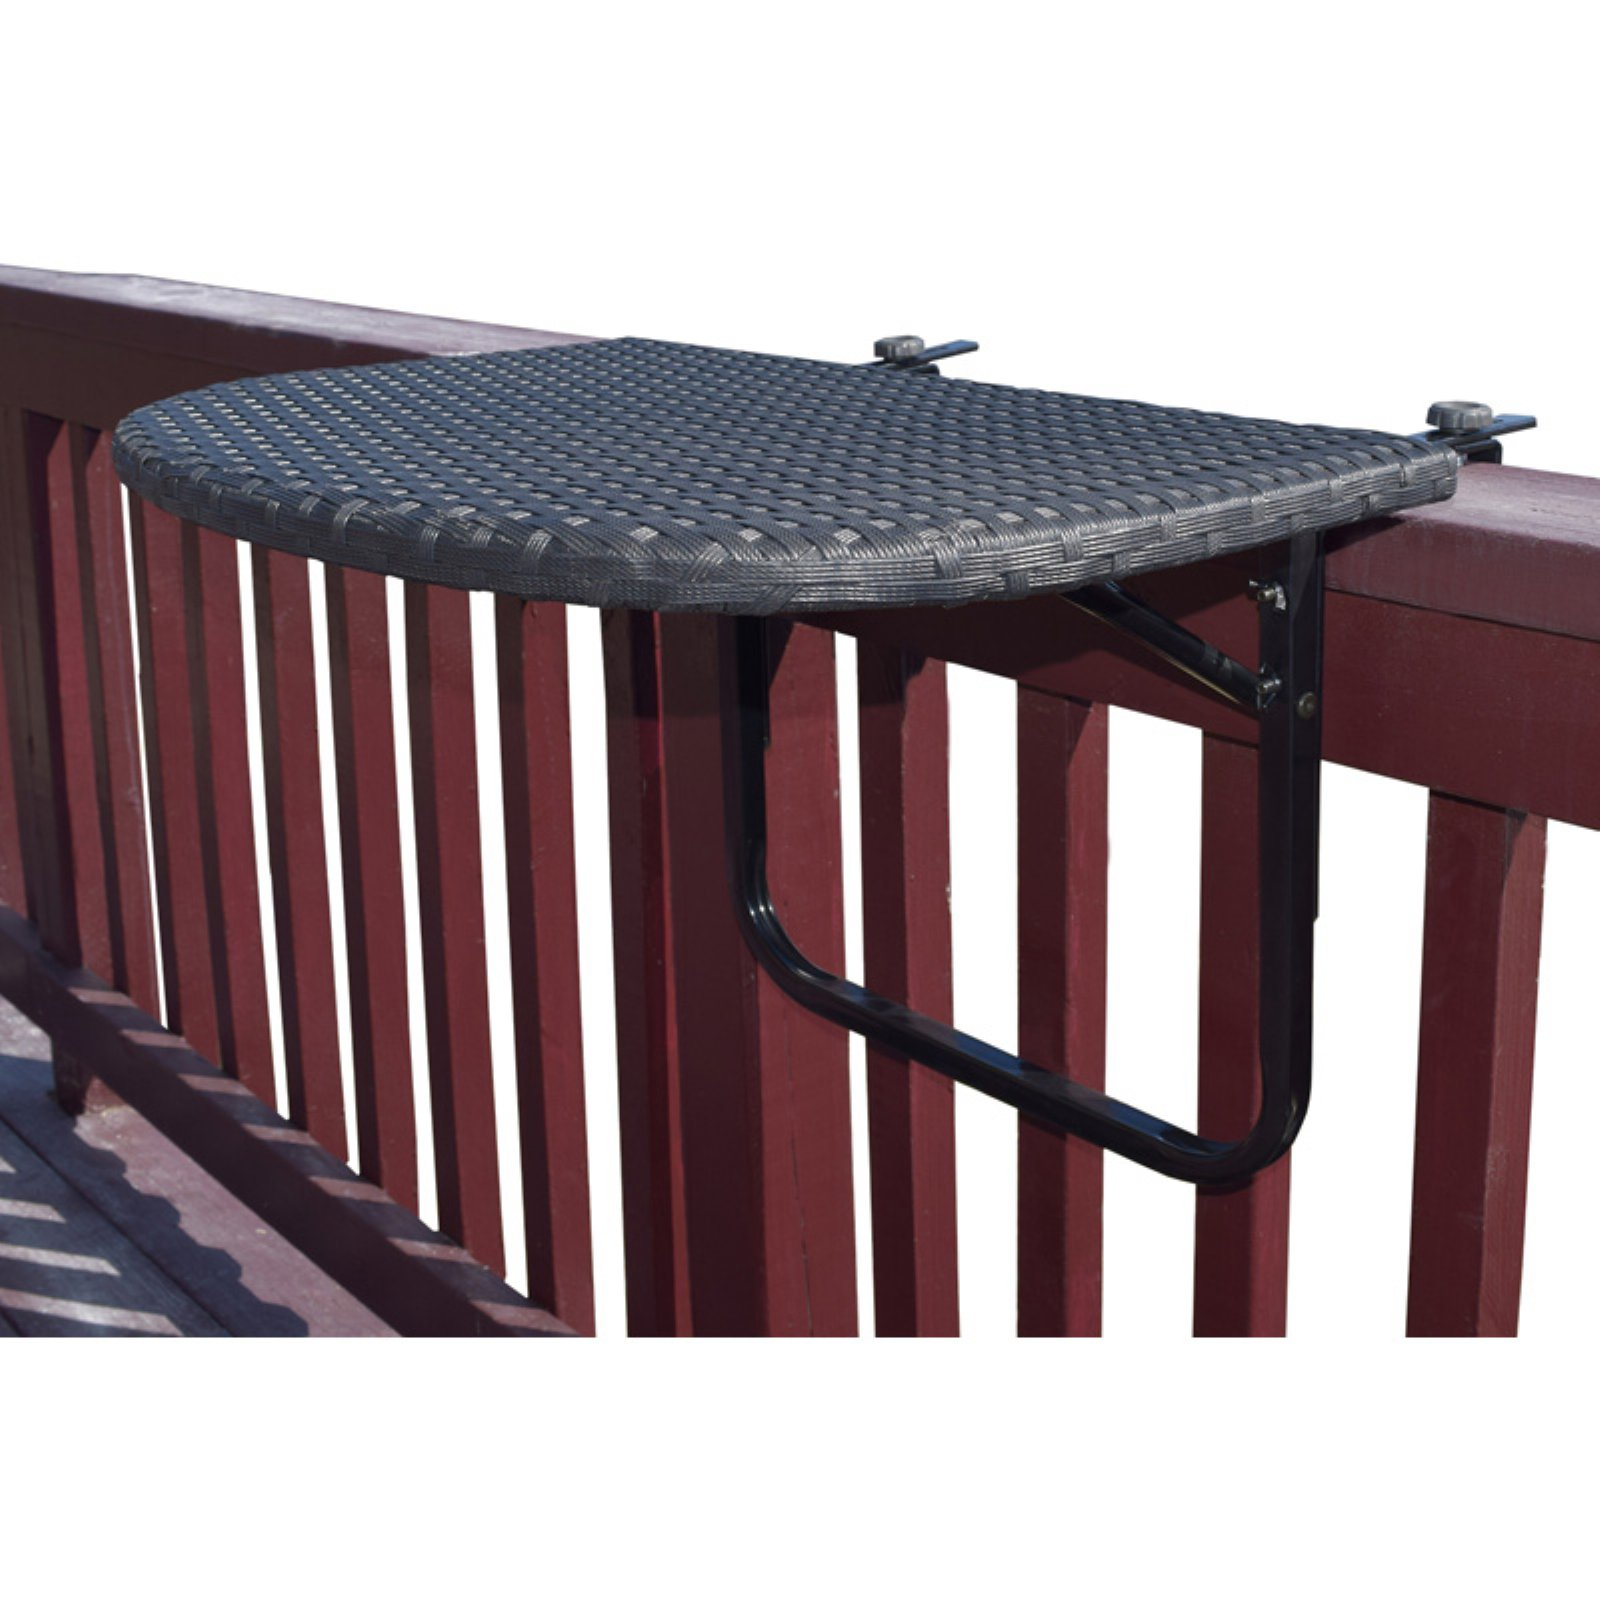 Oakland Living Wicker and Metal Indoor/Outdoor Foldable Balcony Table with Adjustable Clamps